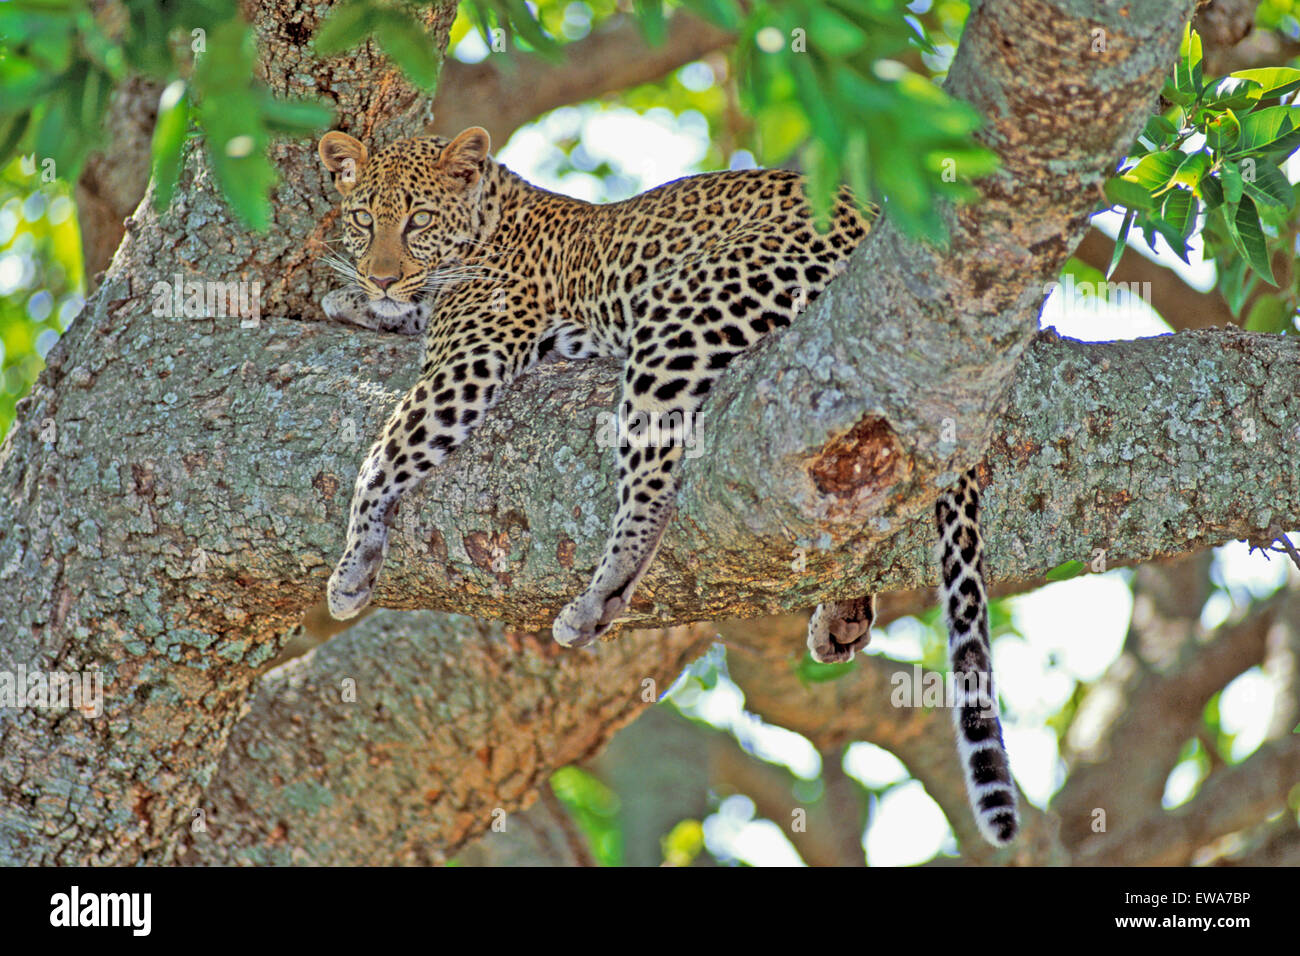 Leopard africaine en repos,arbre,Afrique Masai Mara Photo Stock